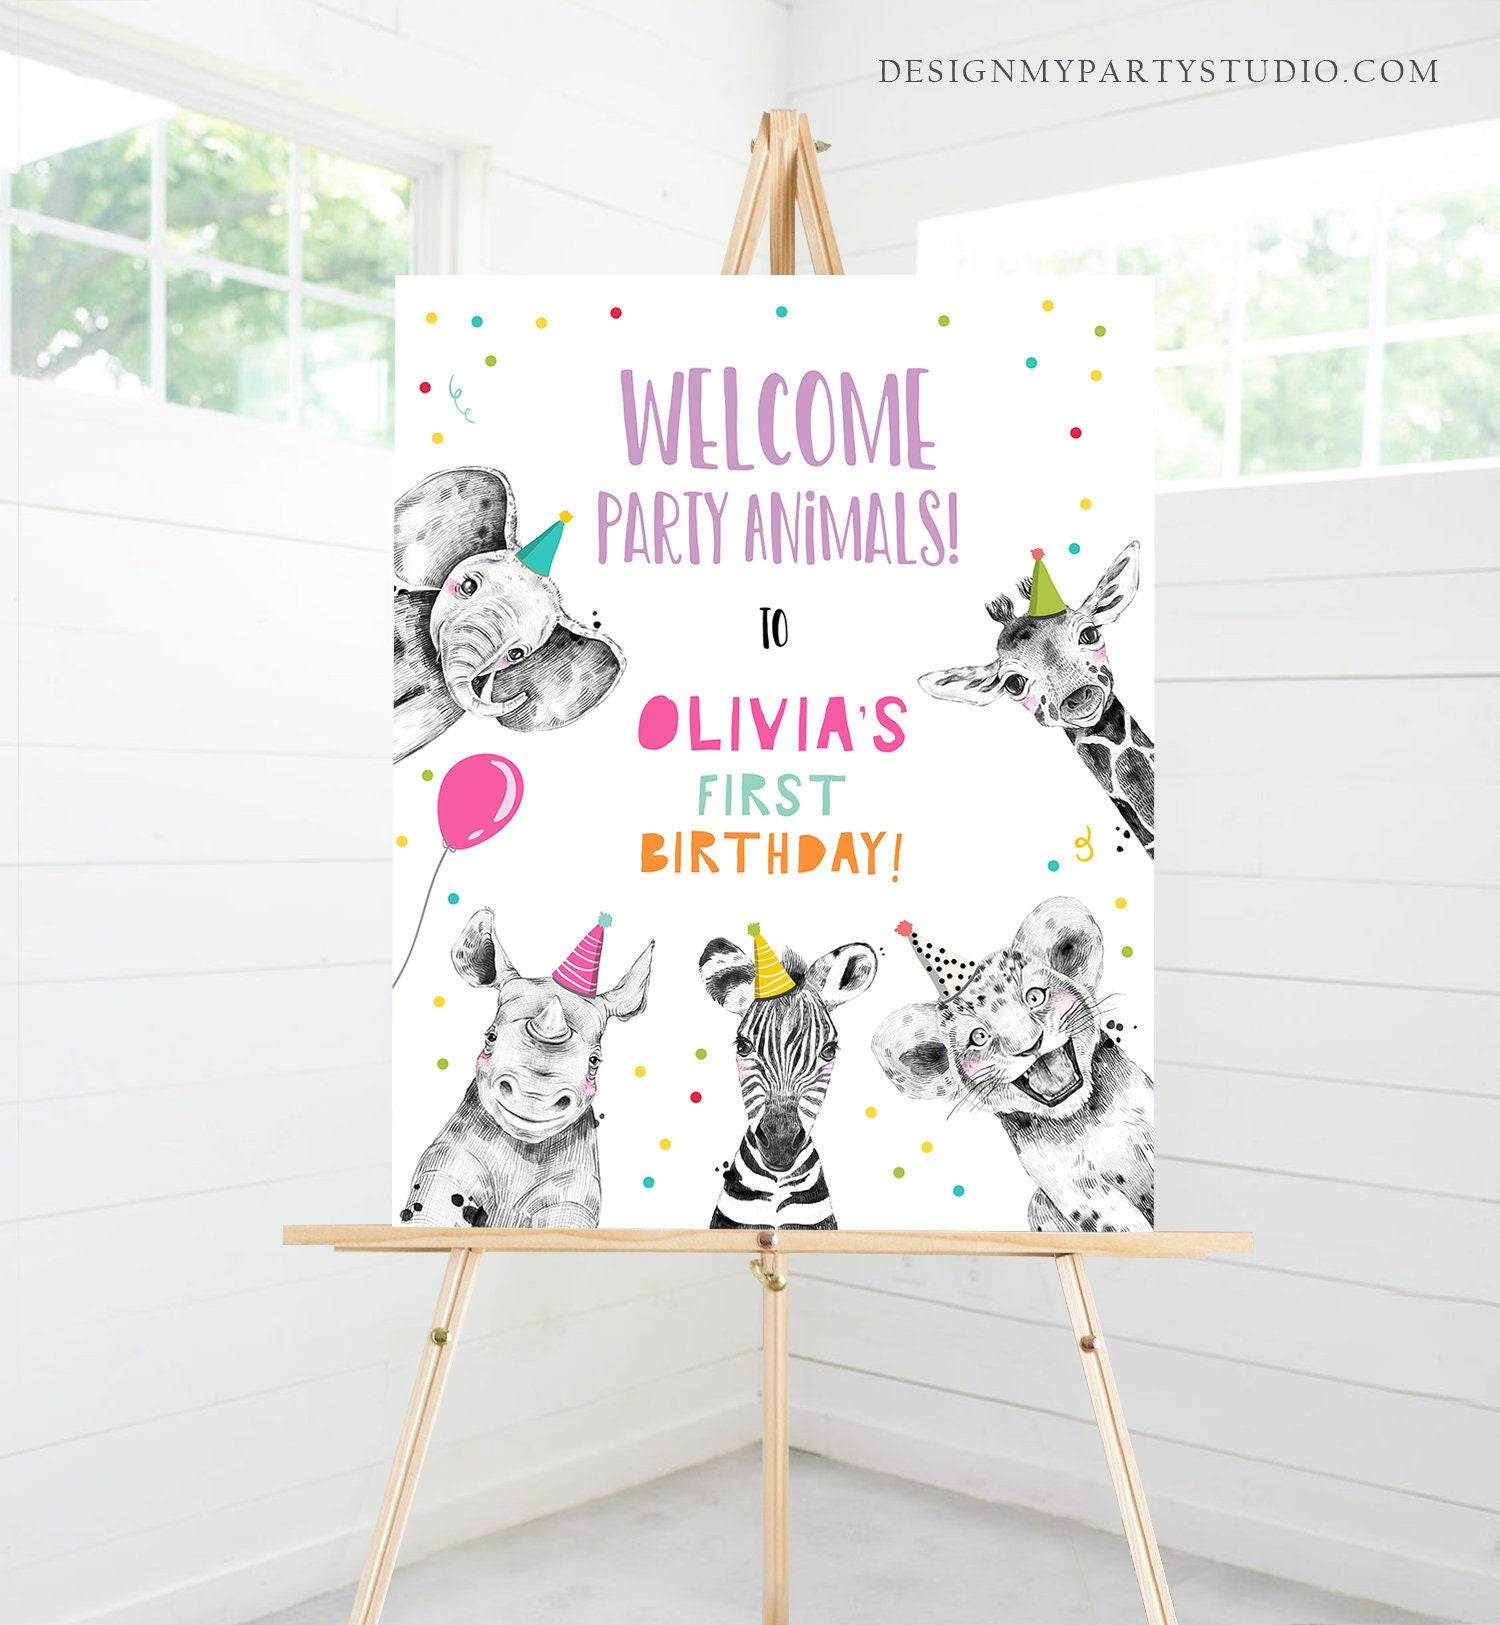 Editable Party Animals Welcome Sign Party Animal Sign Zoo Safari Welcome Jungle Sign Birthday Animals Girl Template PRINTABLE Corjl 0390